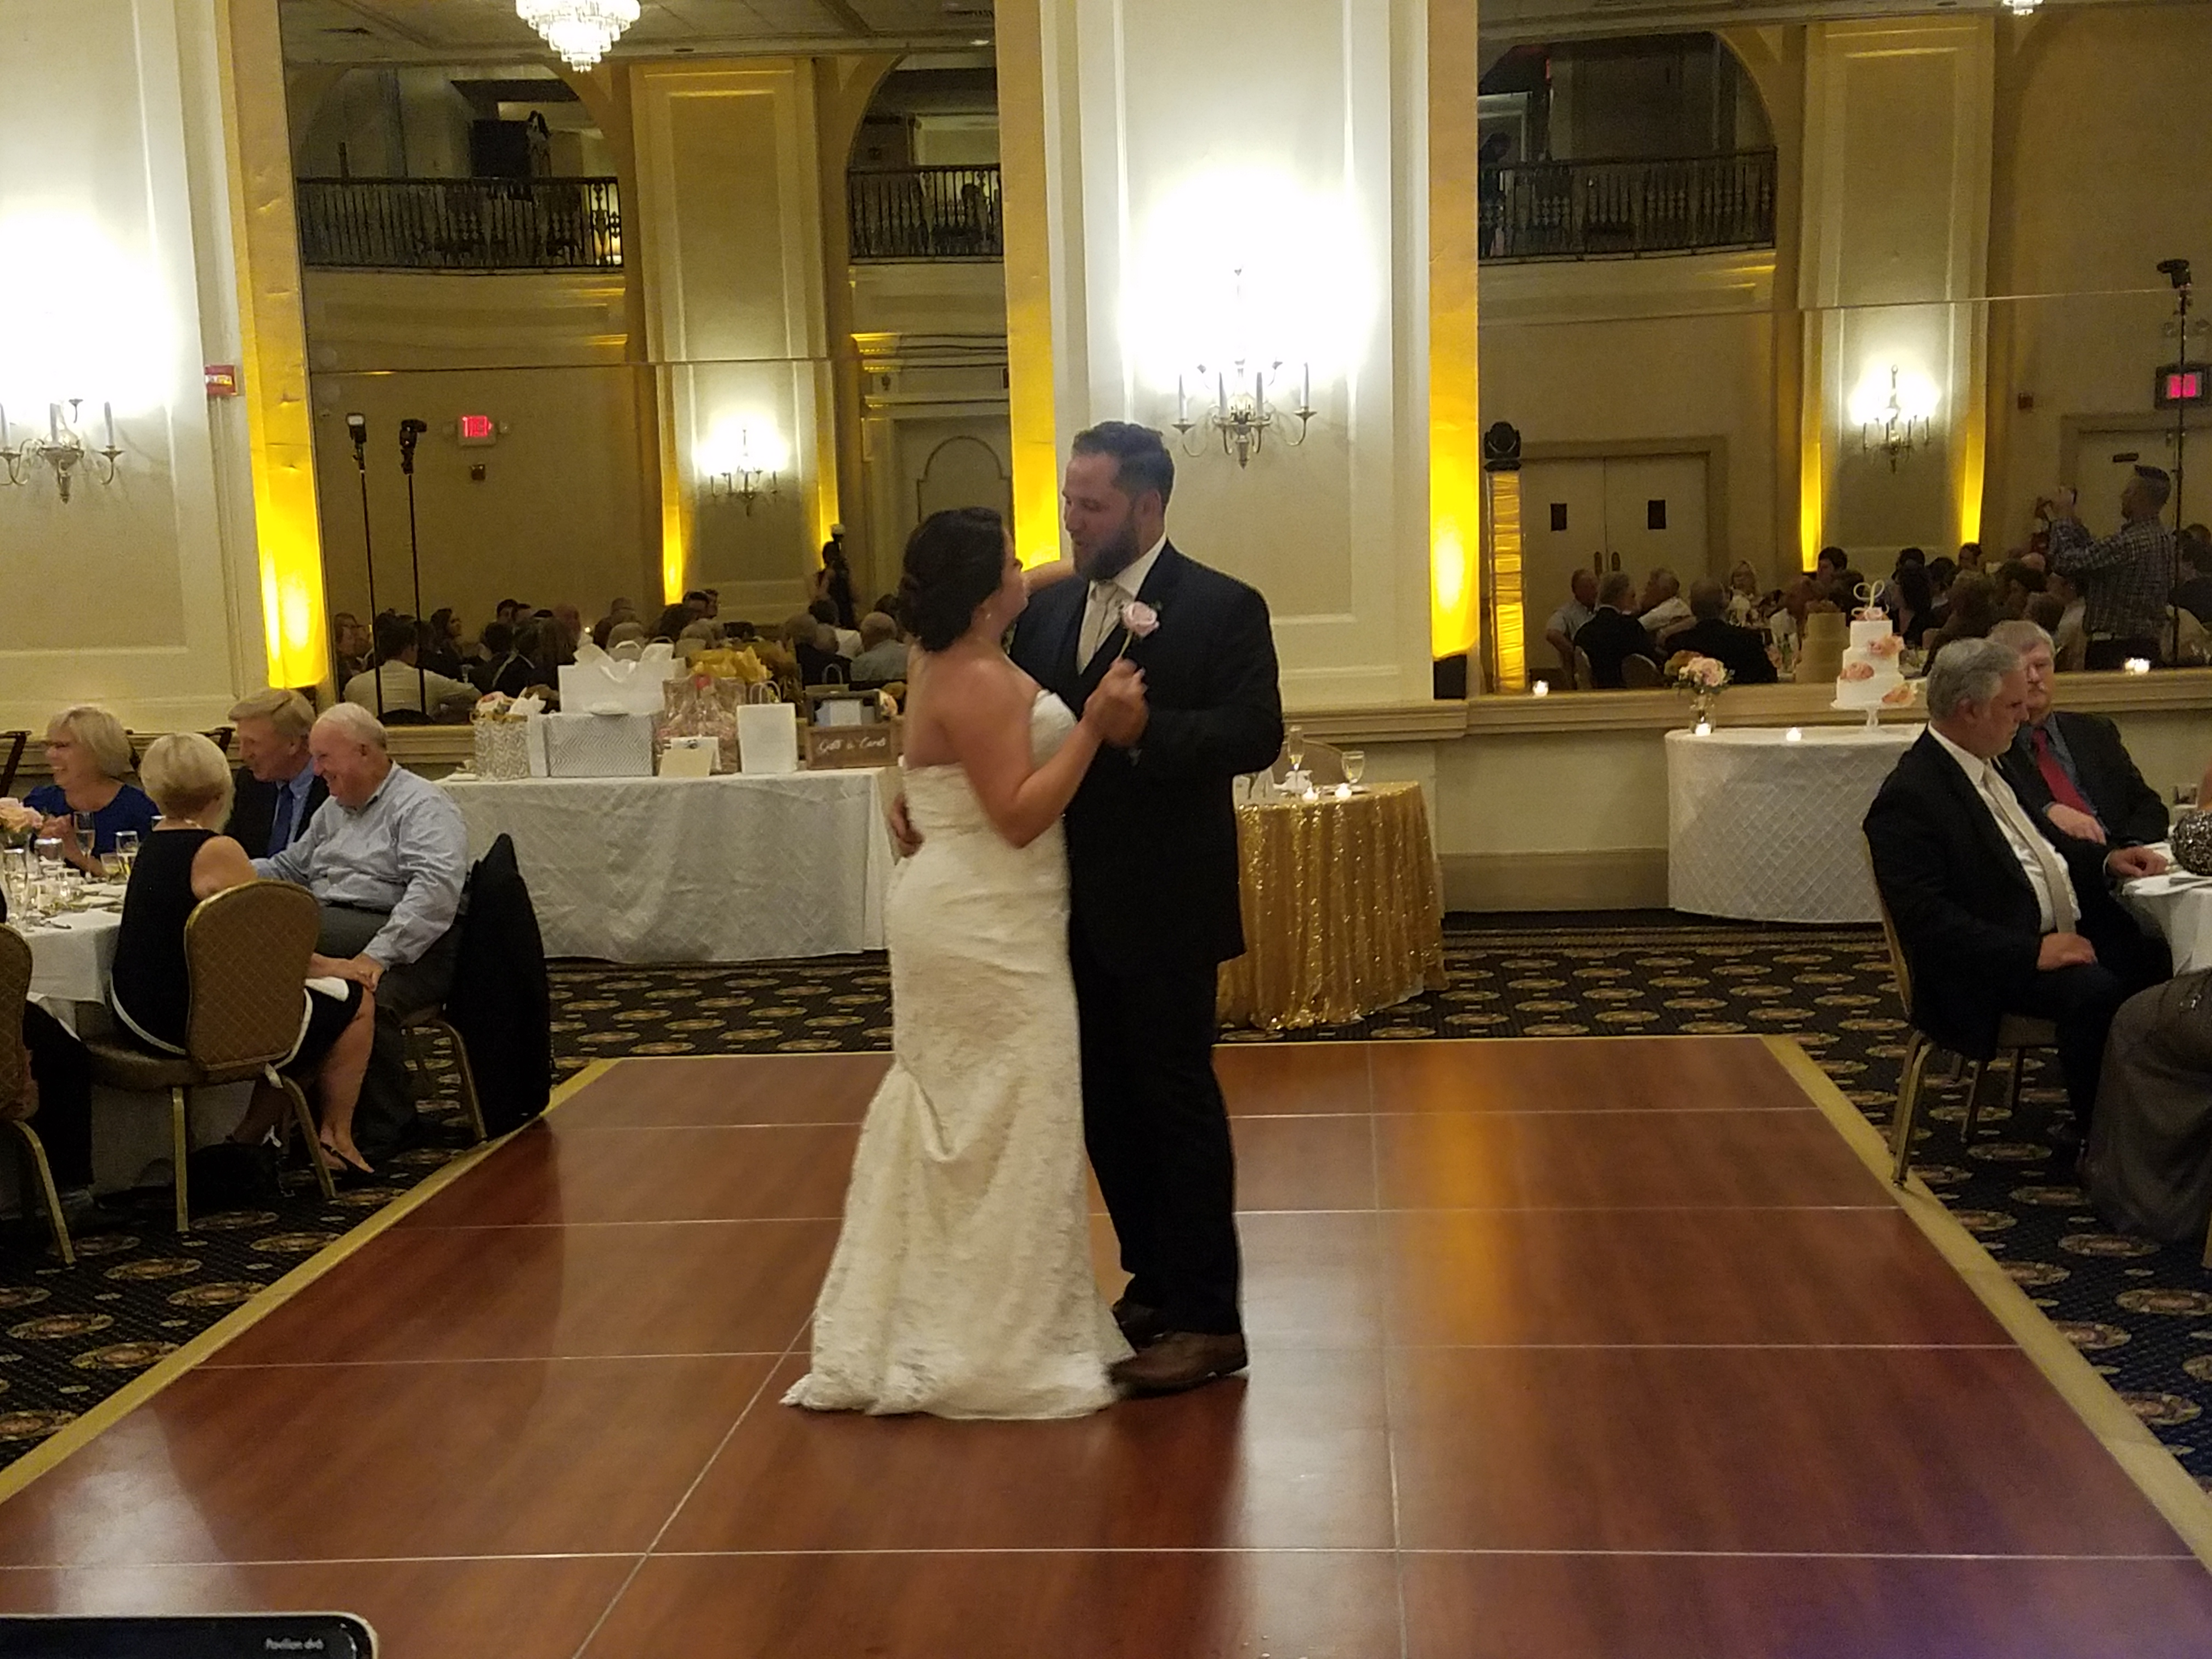 Kim & Greg's wedding First dance at The Historic Hotel Bethlehem in the Lehigh Valley with amber uplighting